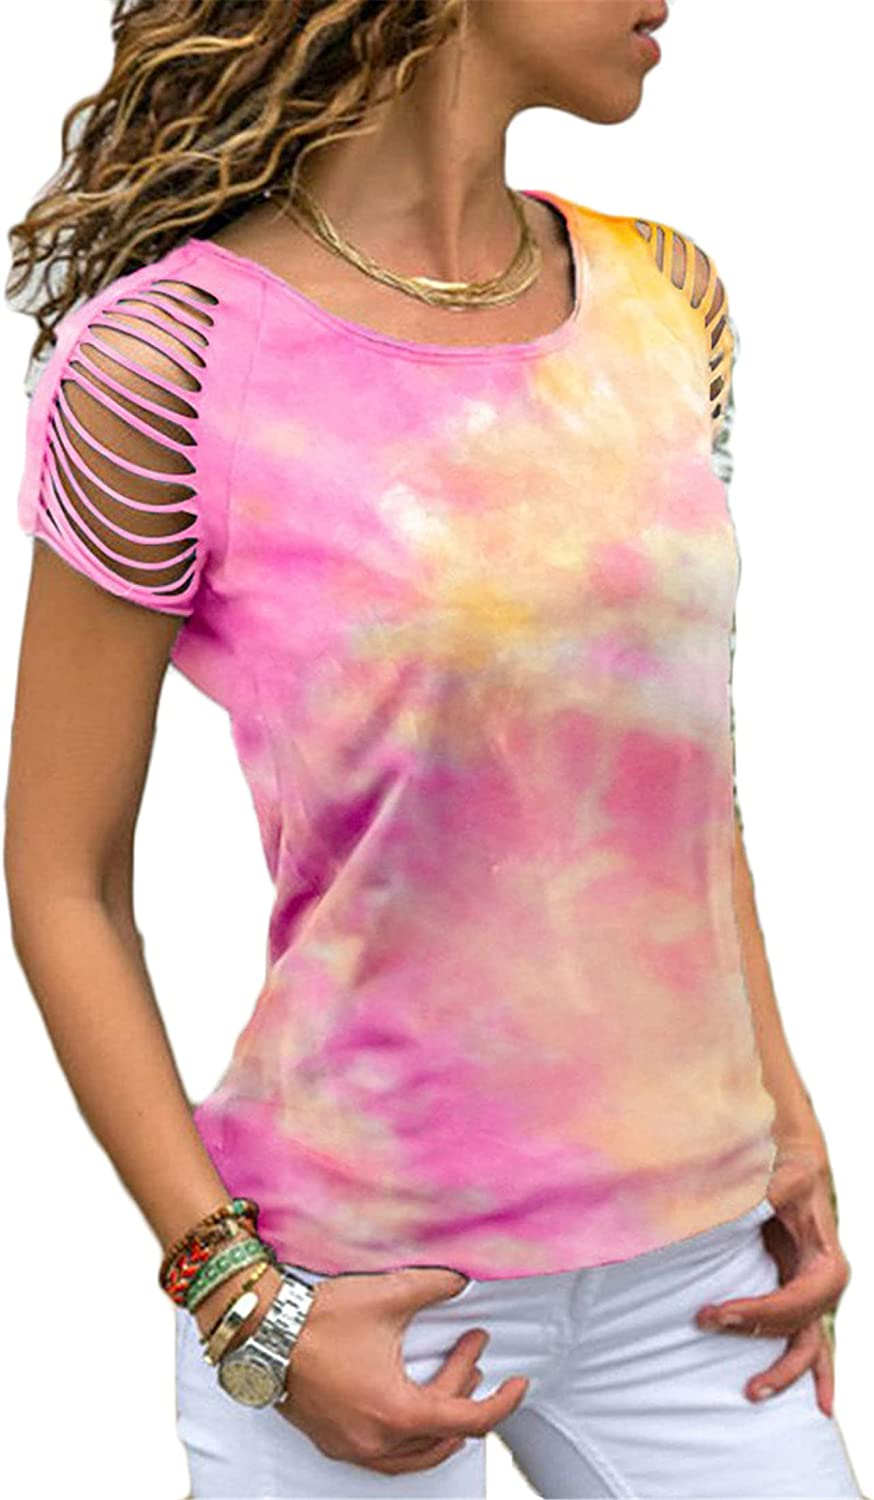 Andongnywell Women's Tie Dye Gradient Shirt Crewneck Off Shoulder Short Sleeve T-Shirt Loose Pullover Casual Color Top